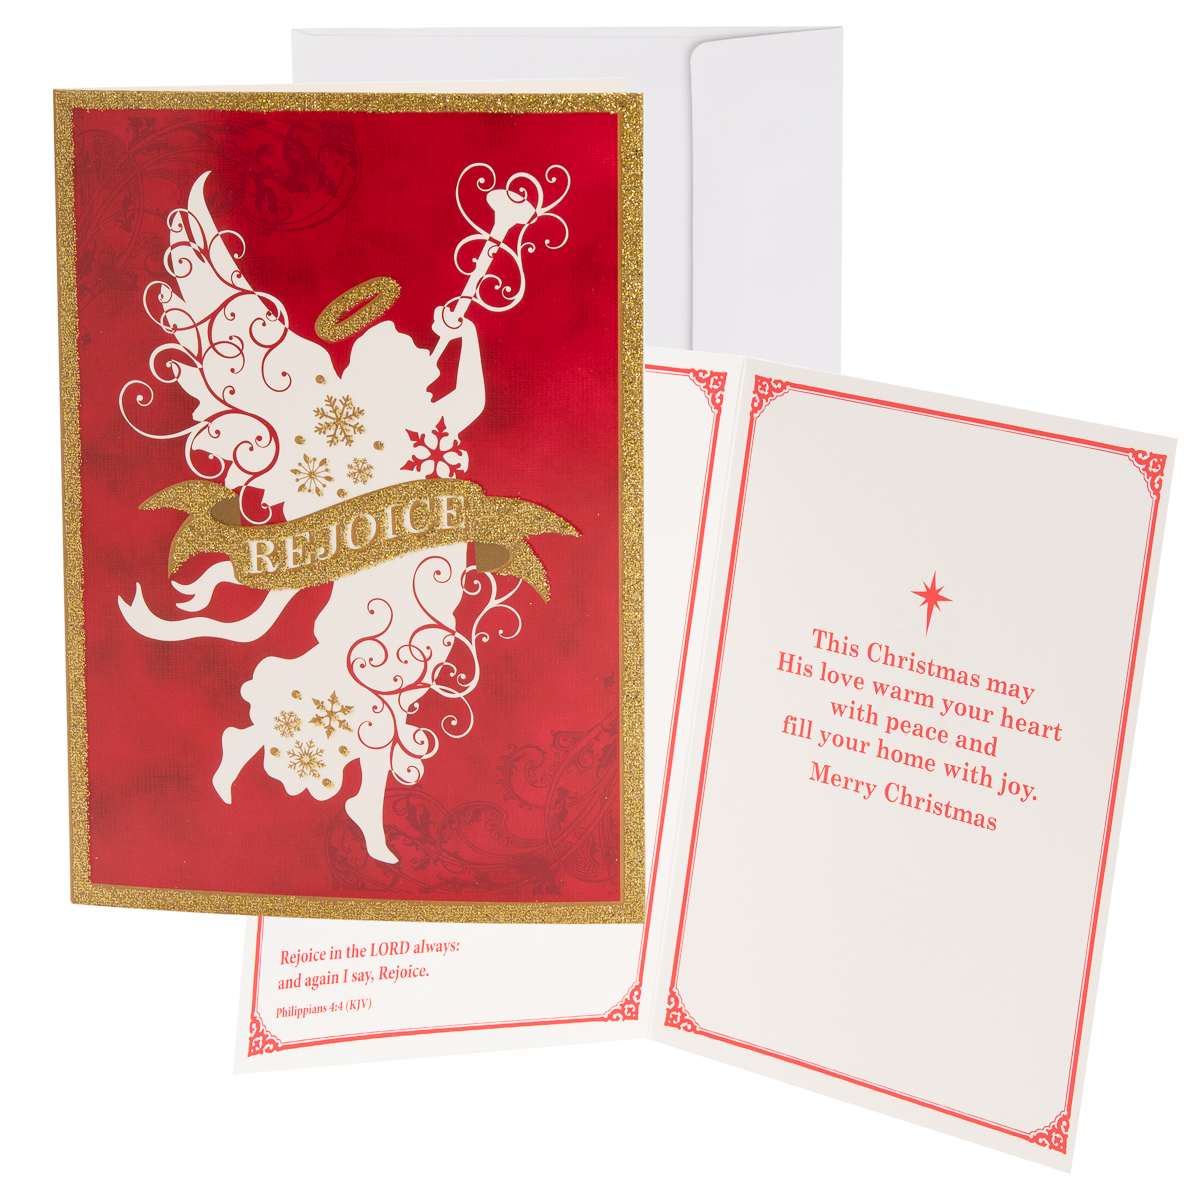 48pk-Merry-Christmas-Cards-Bulk-Assortment-Holiday-Card-Pack-with-Foil-amp-Glitter thumbnail 19